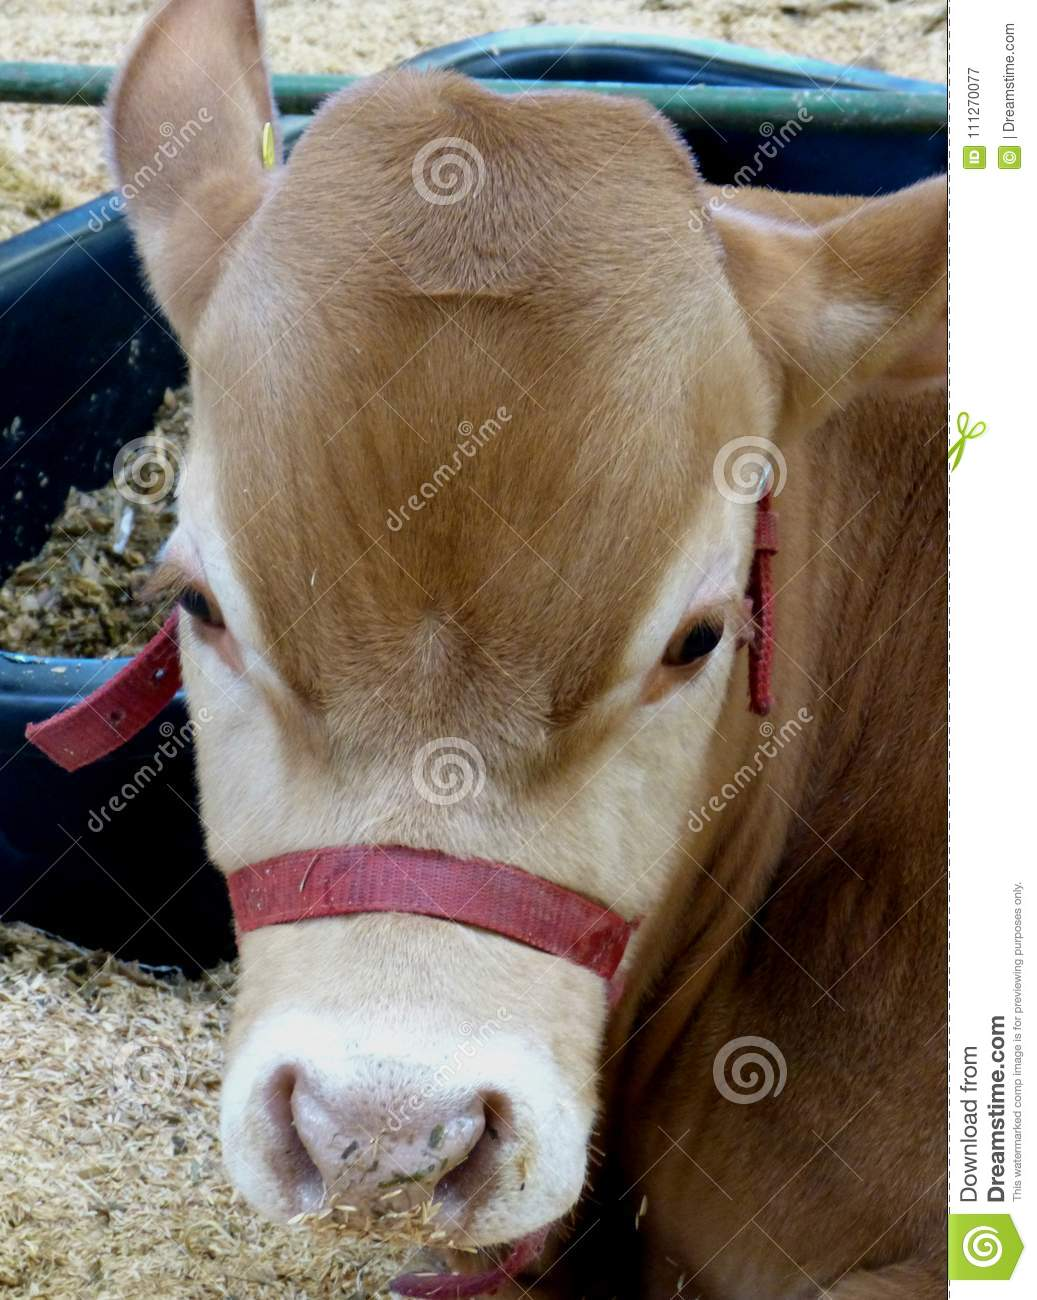 Baby cow in a exposition